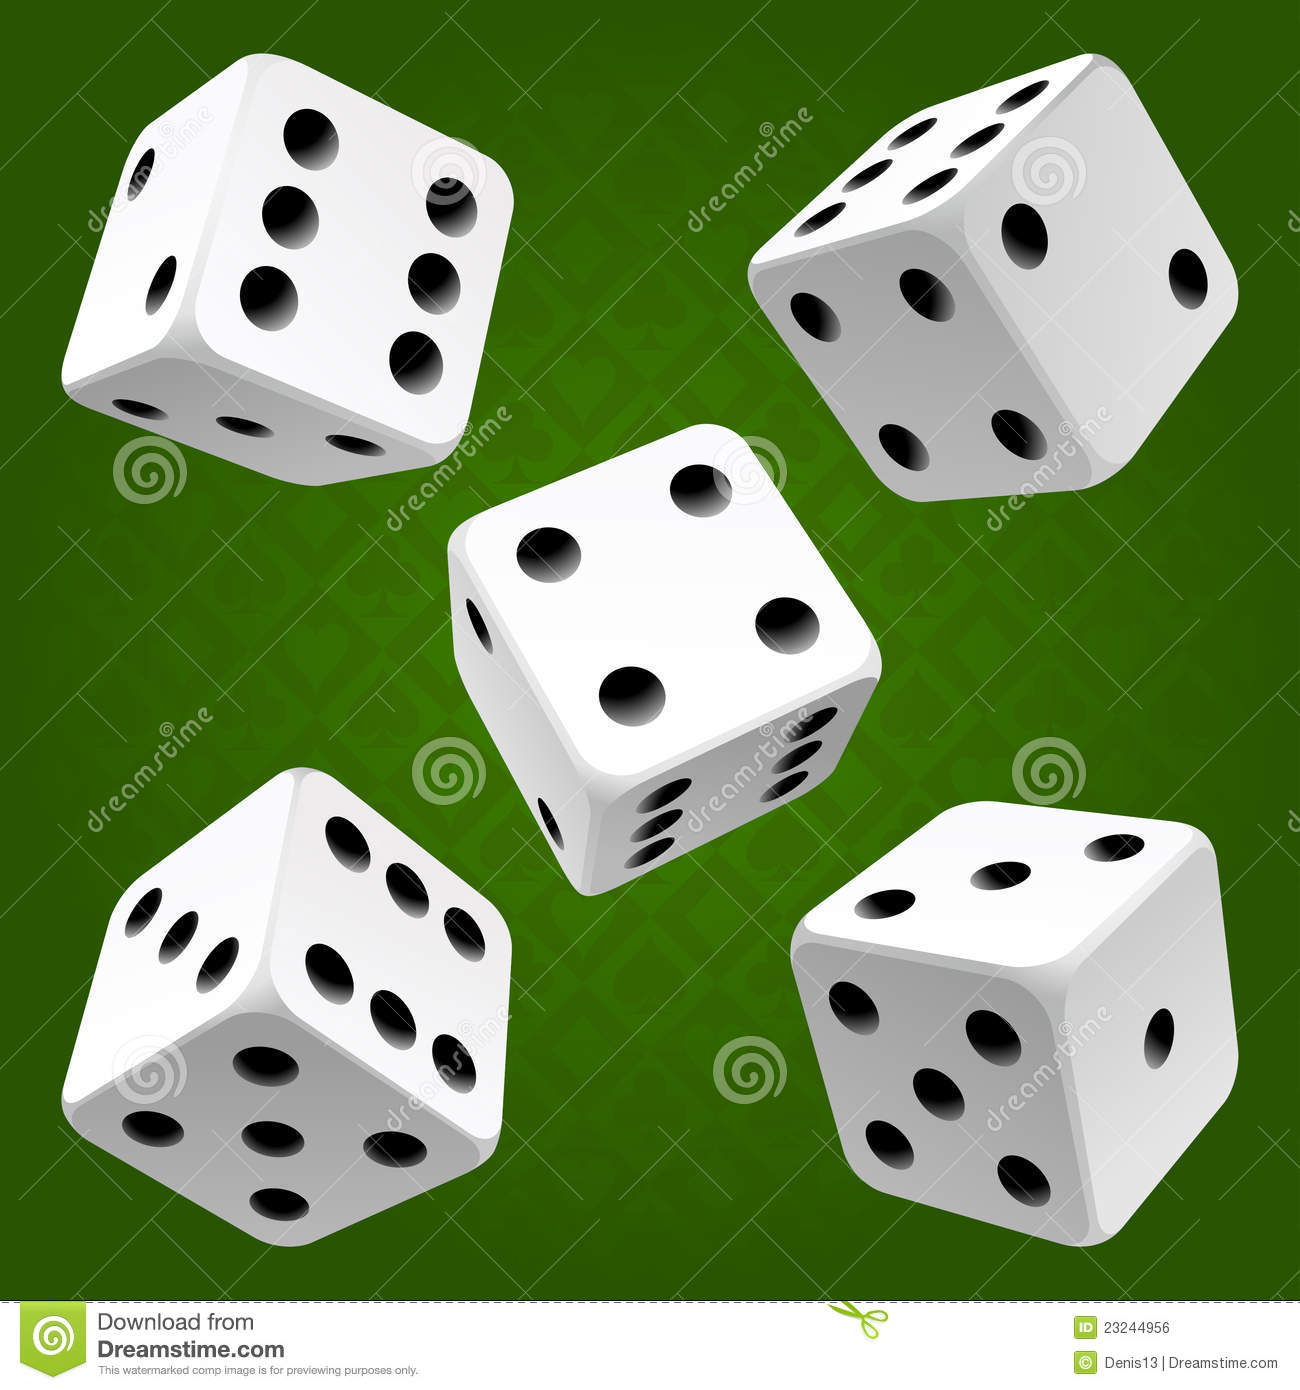 free casino play online dice roll online